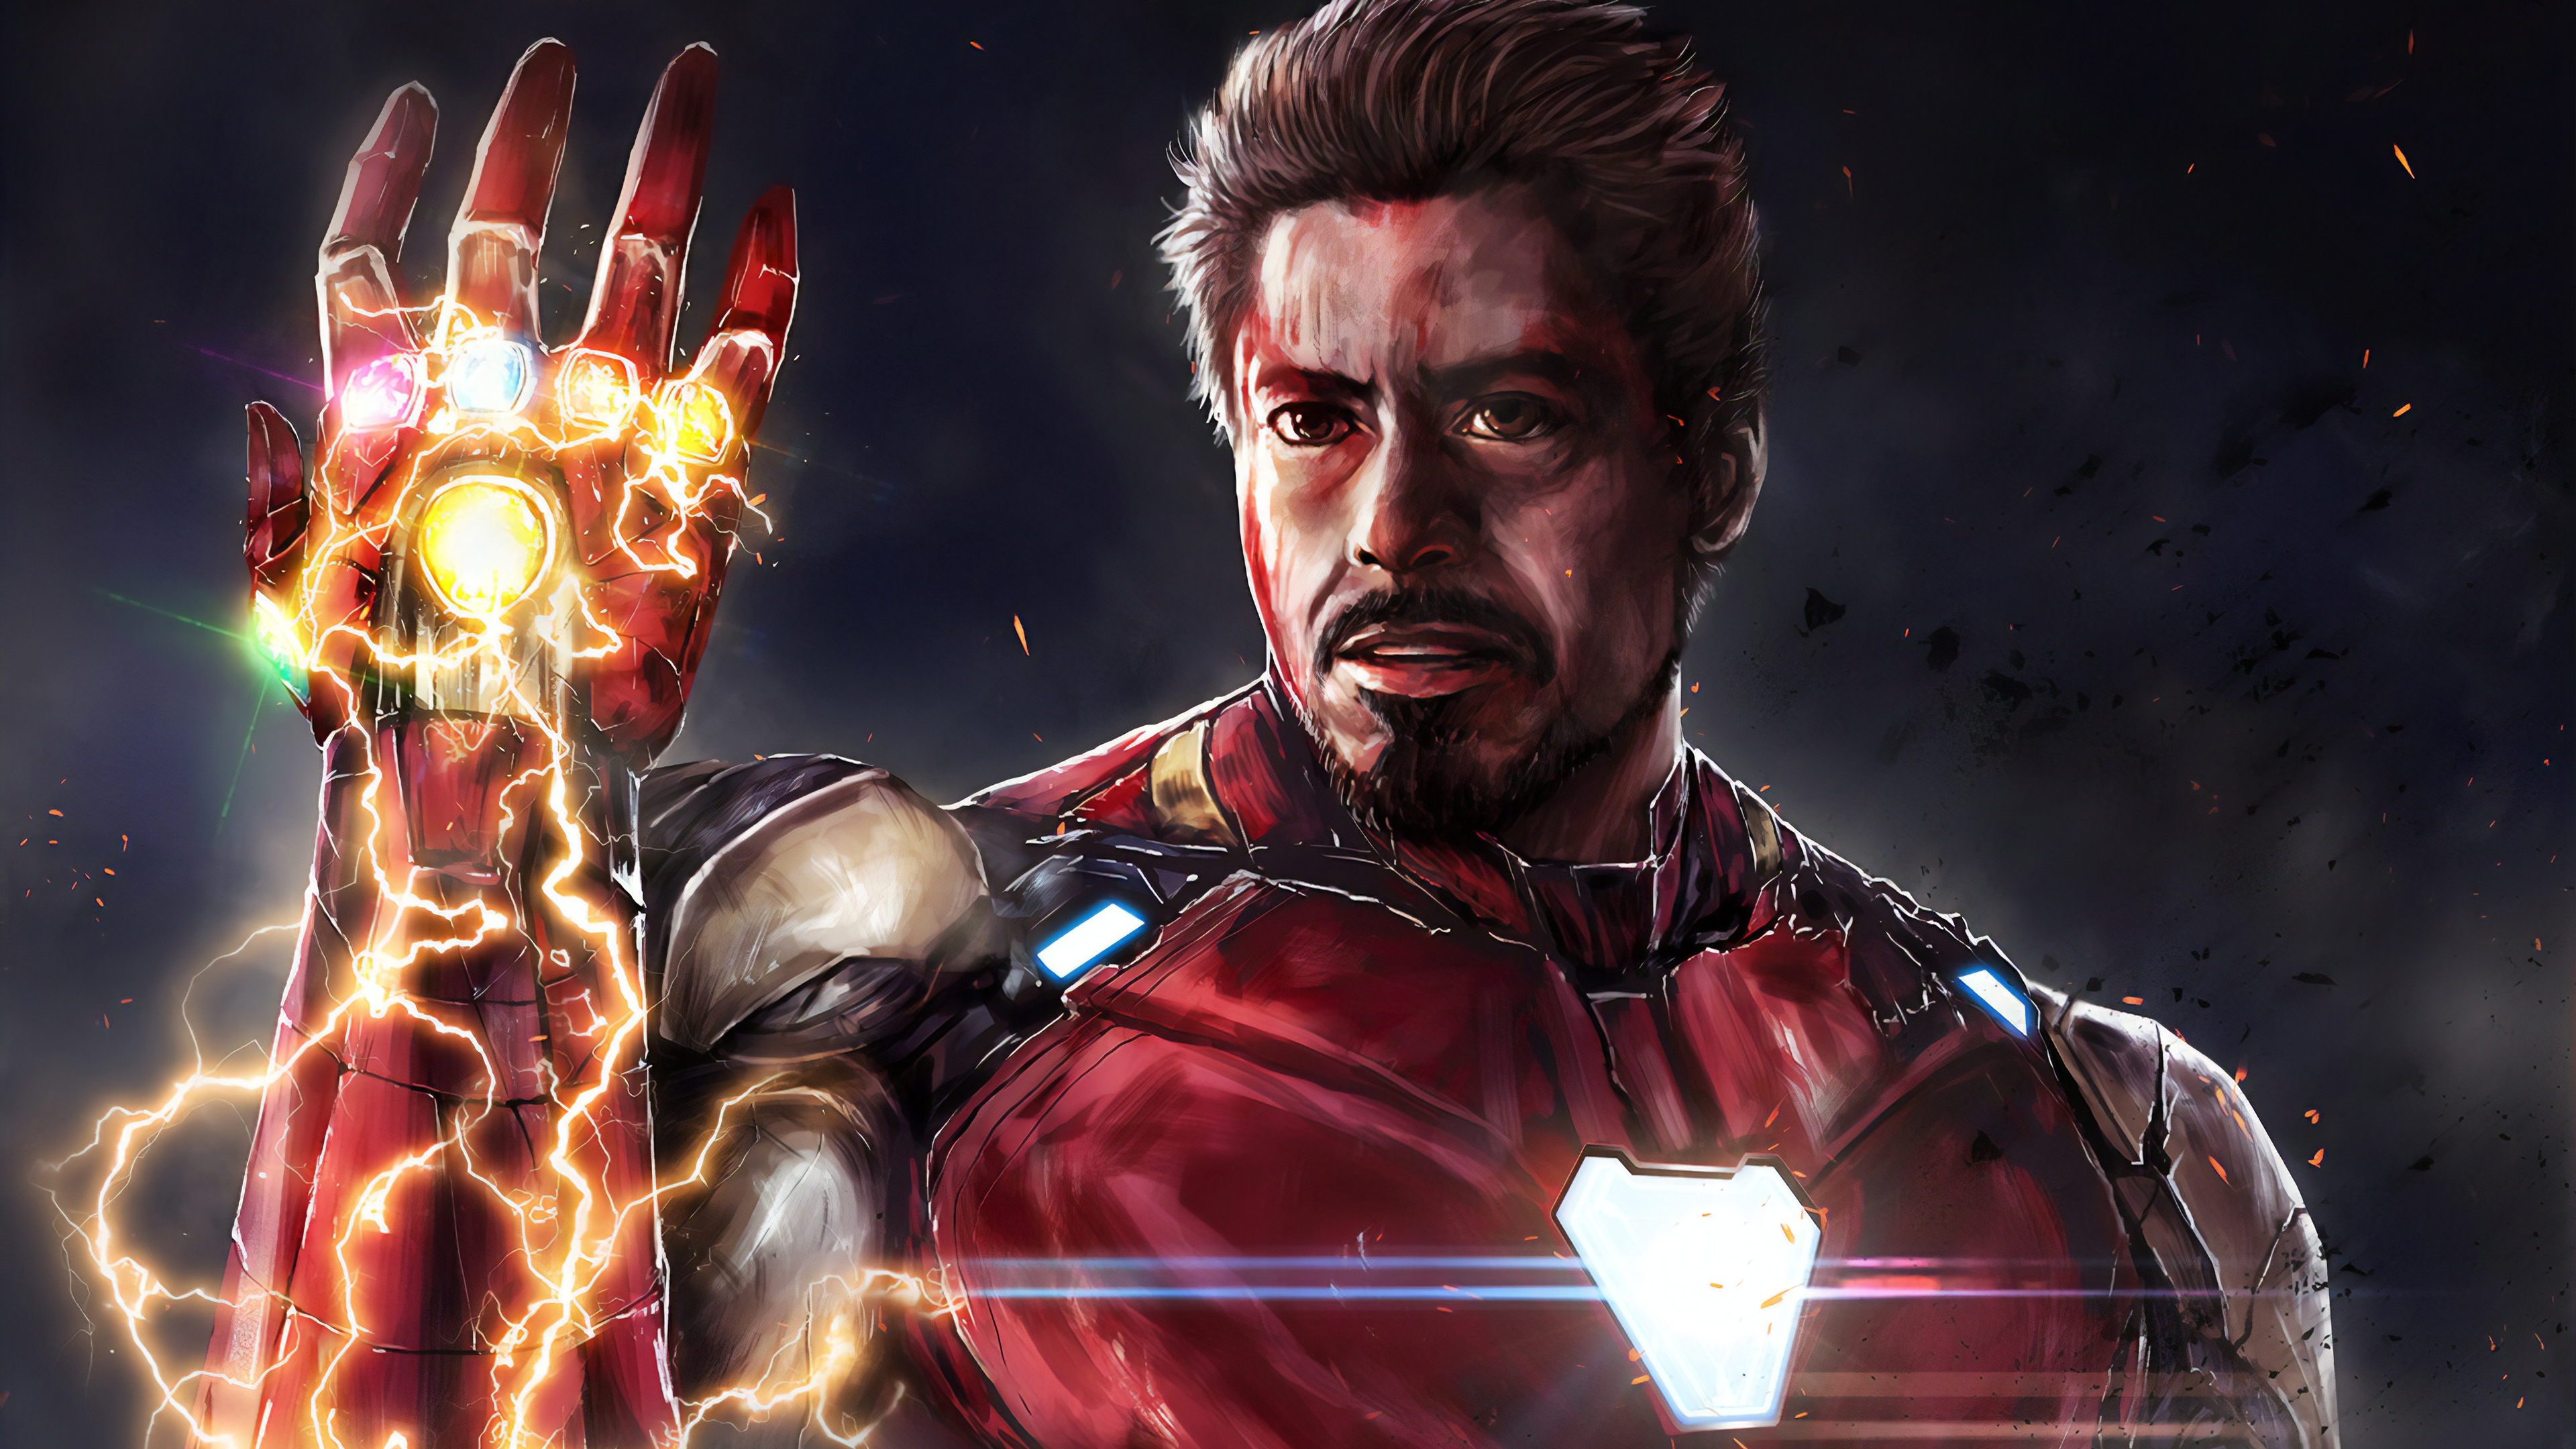 Wallpaper 4k I Am Iron Man 4k Art 4k Wallpapers Artwork